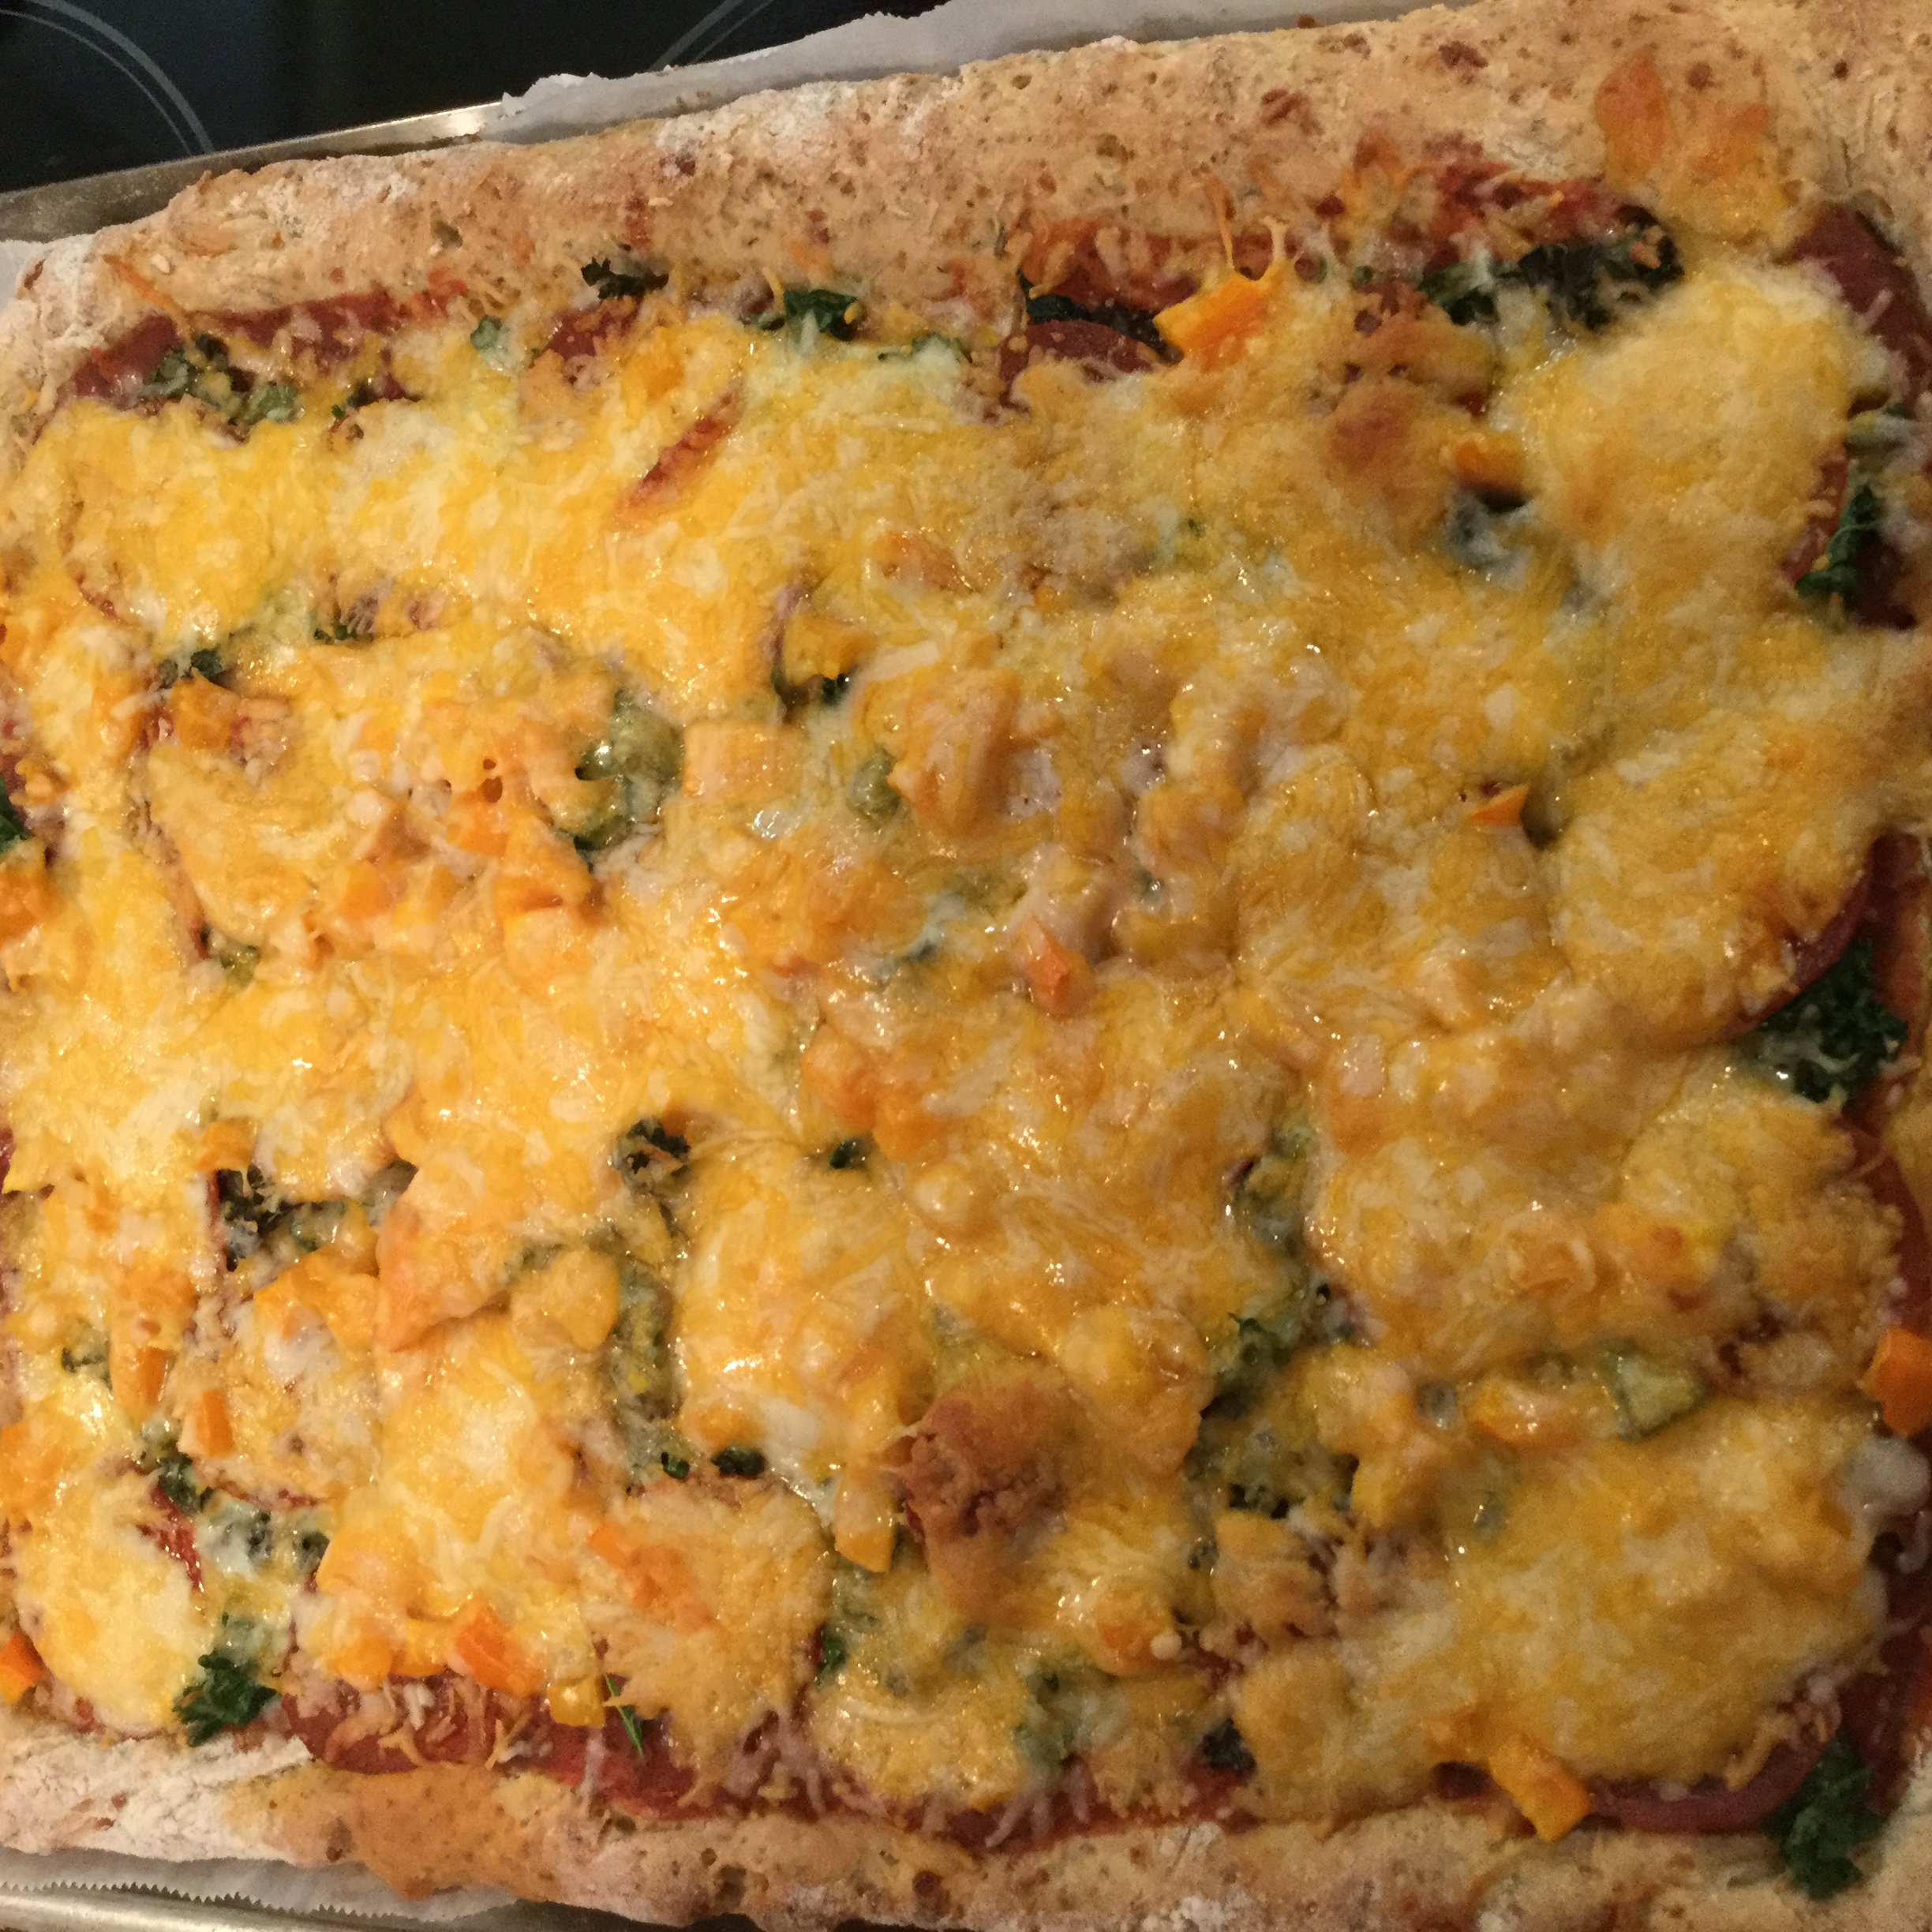 Gluten-Free Cheese and Herb Pizza Crust